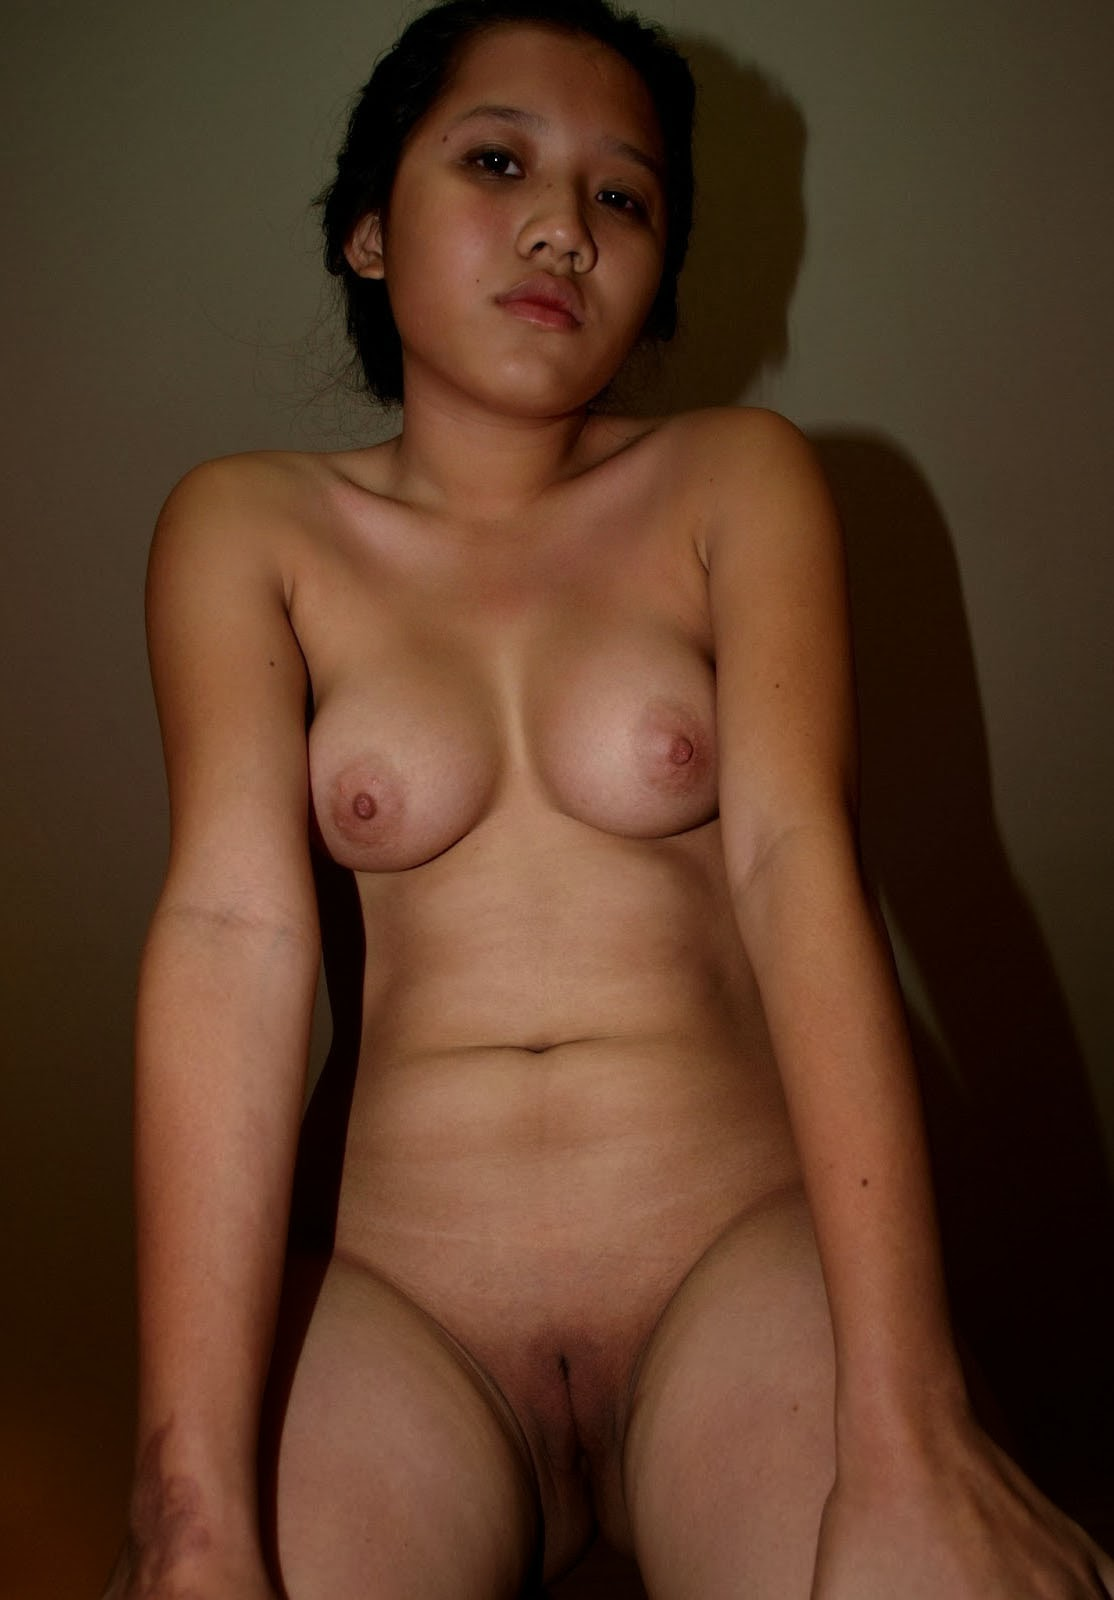 sweet self young nude